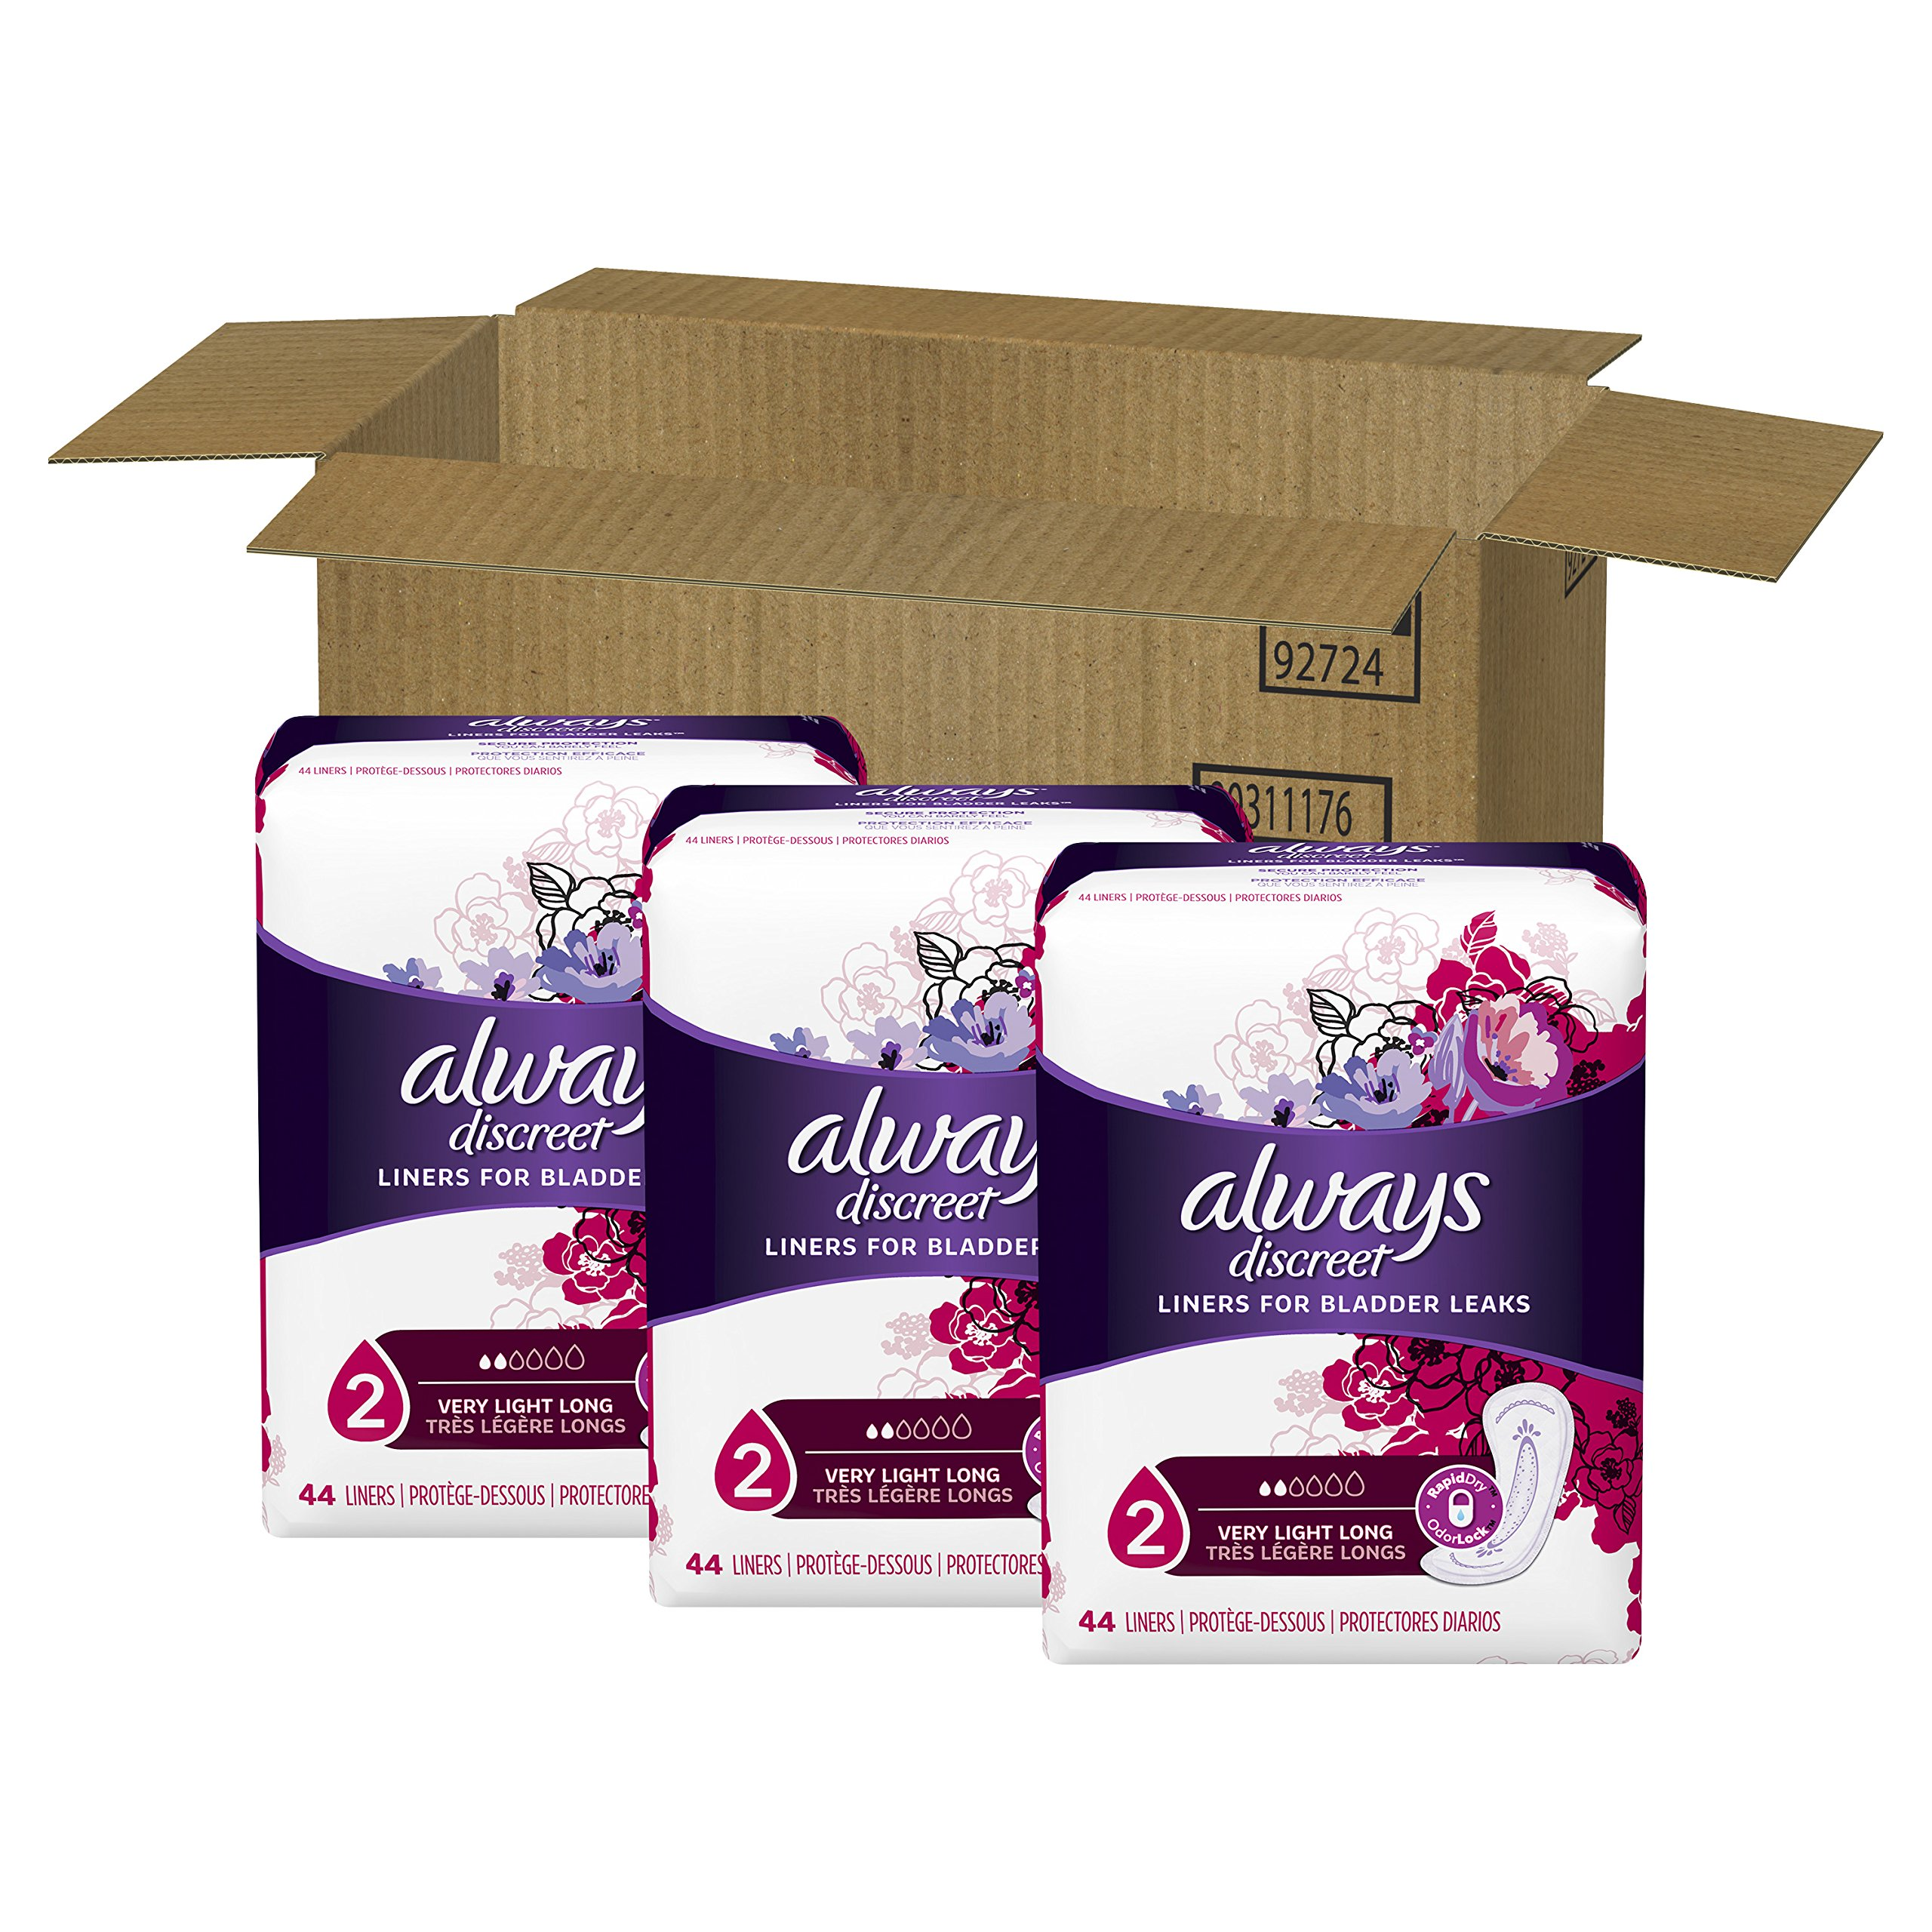 Always Discreet, Incontinence Liners, Very Light, Long Length, 44 Count - Pack of 3 (132 Total Count) by Always Discreet (Image #3)